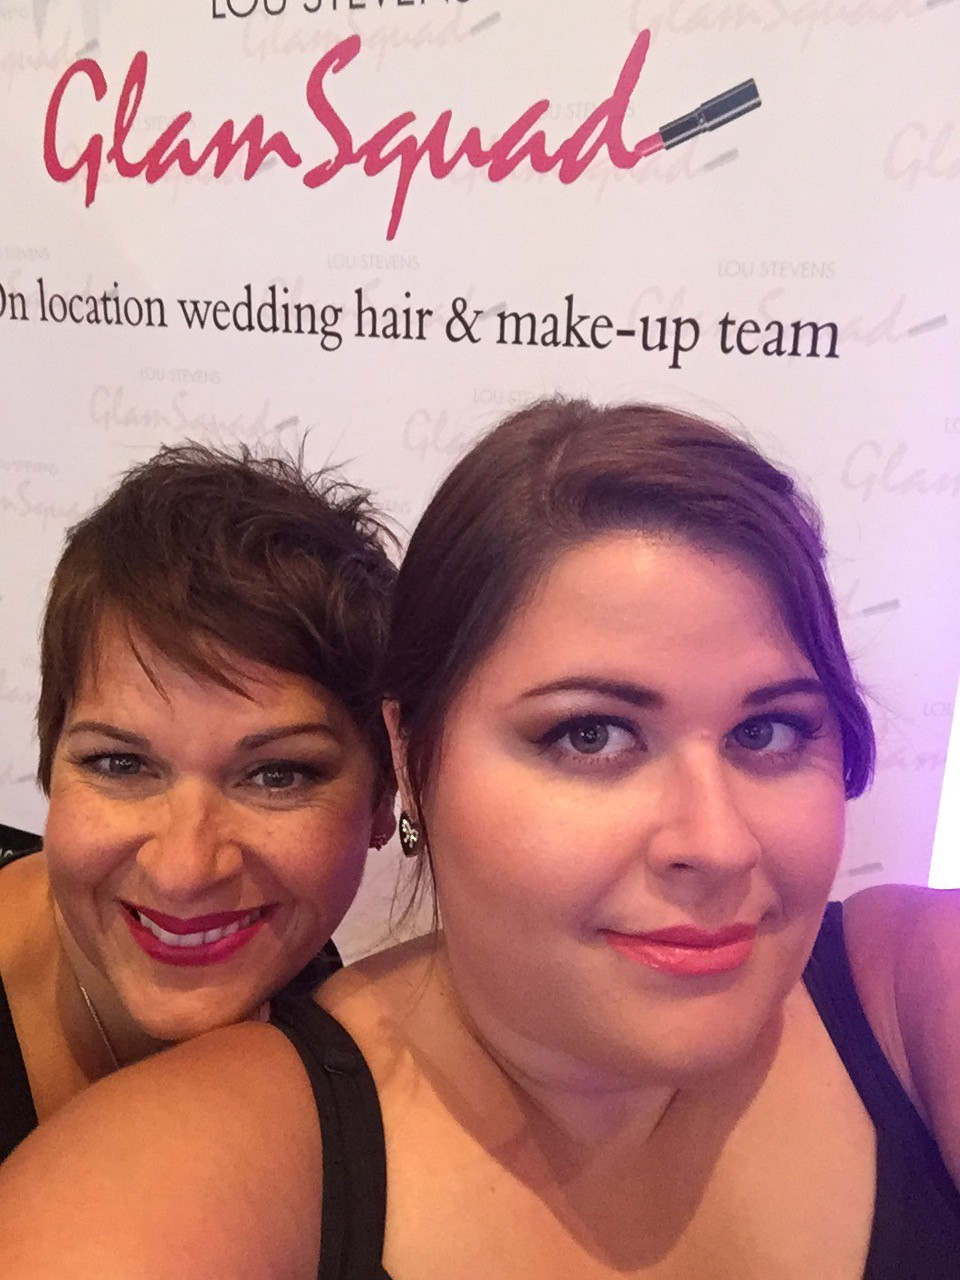 Lou and Malory are ready to talk to some brides!